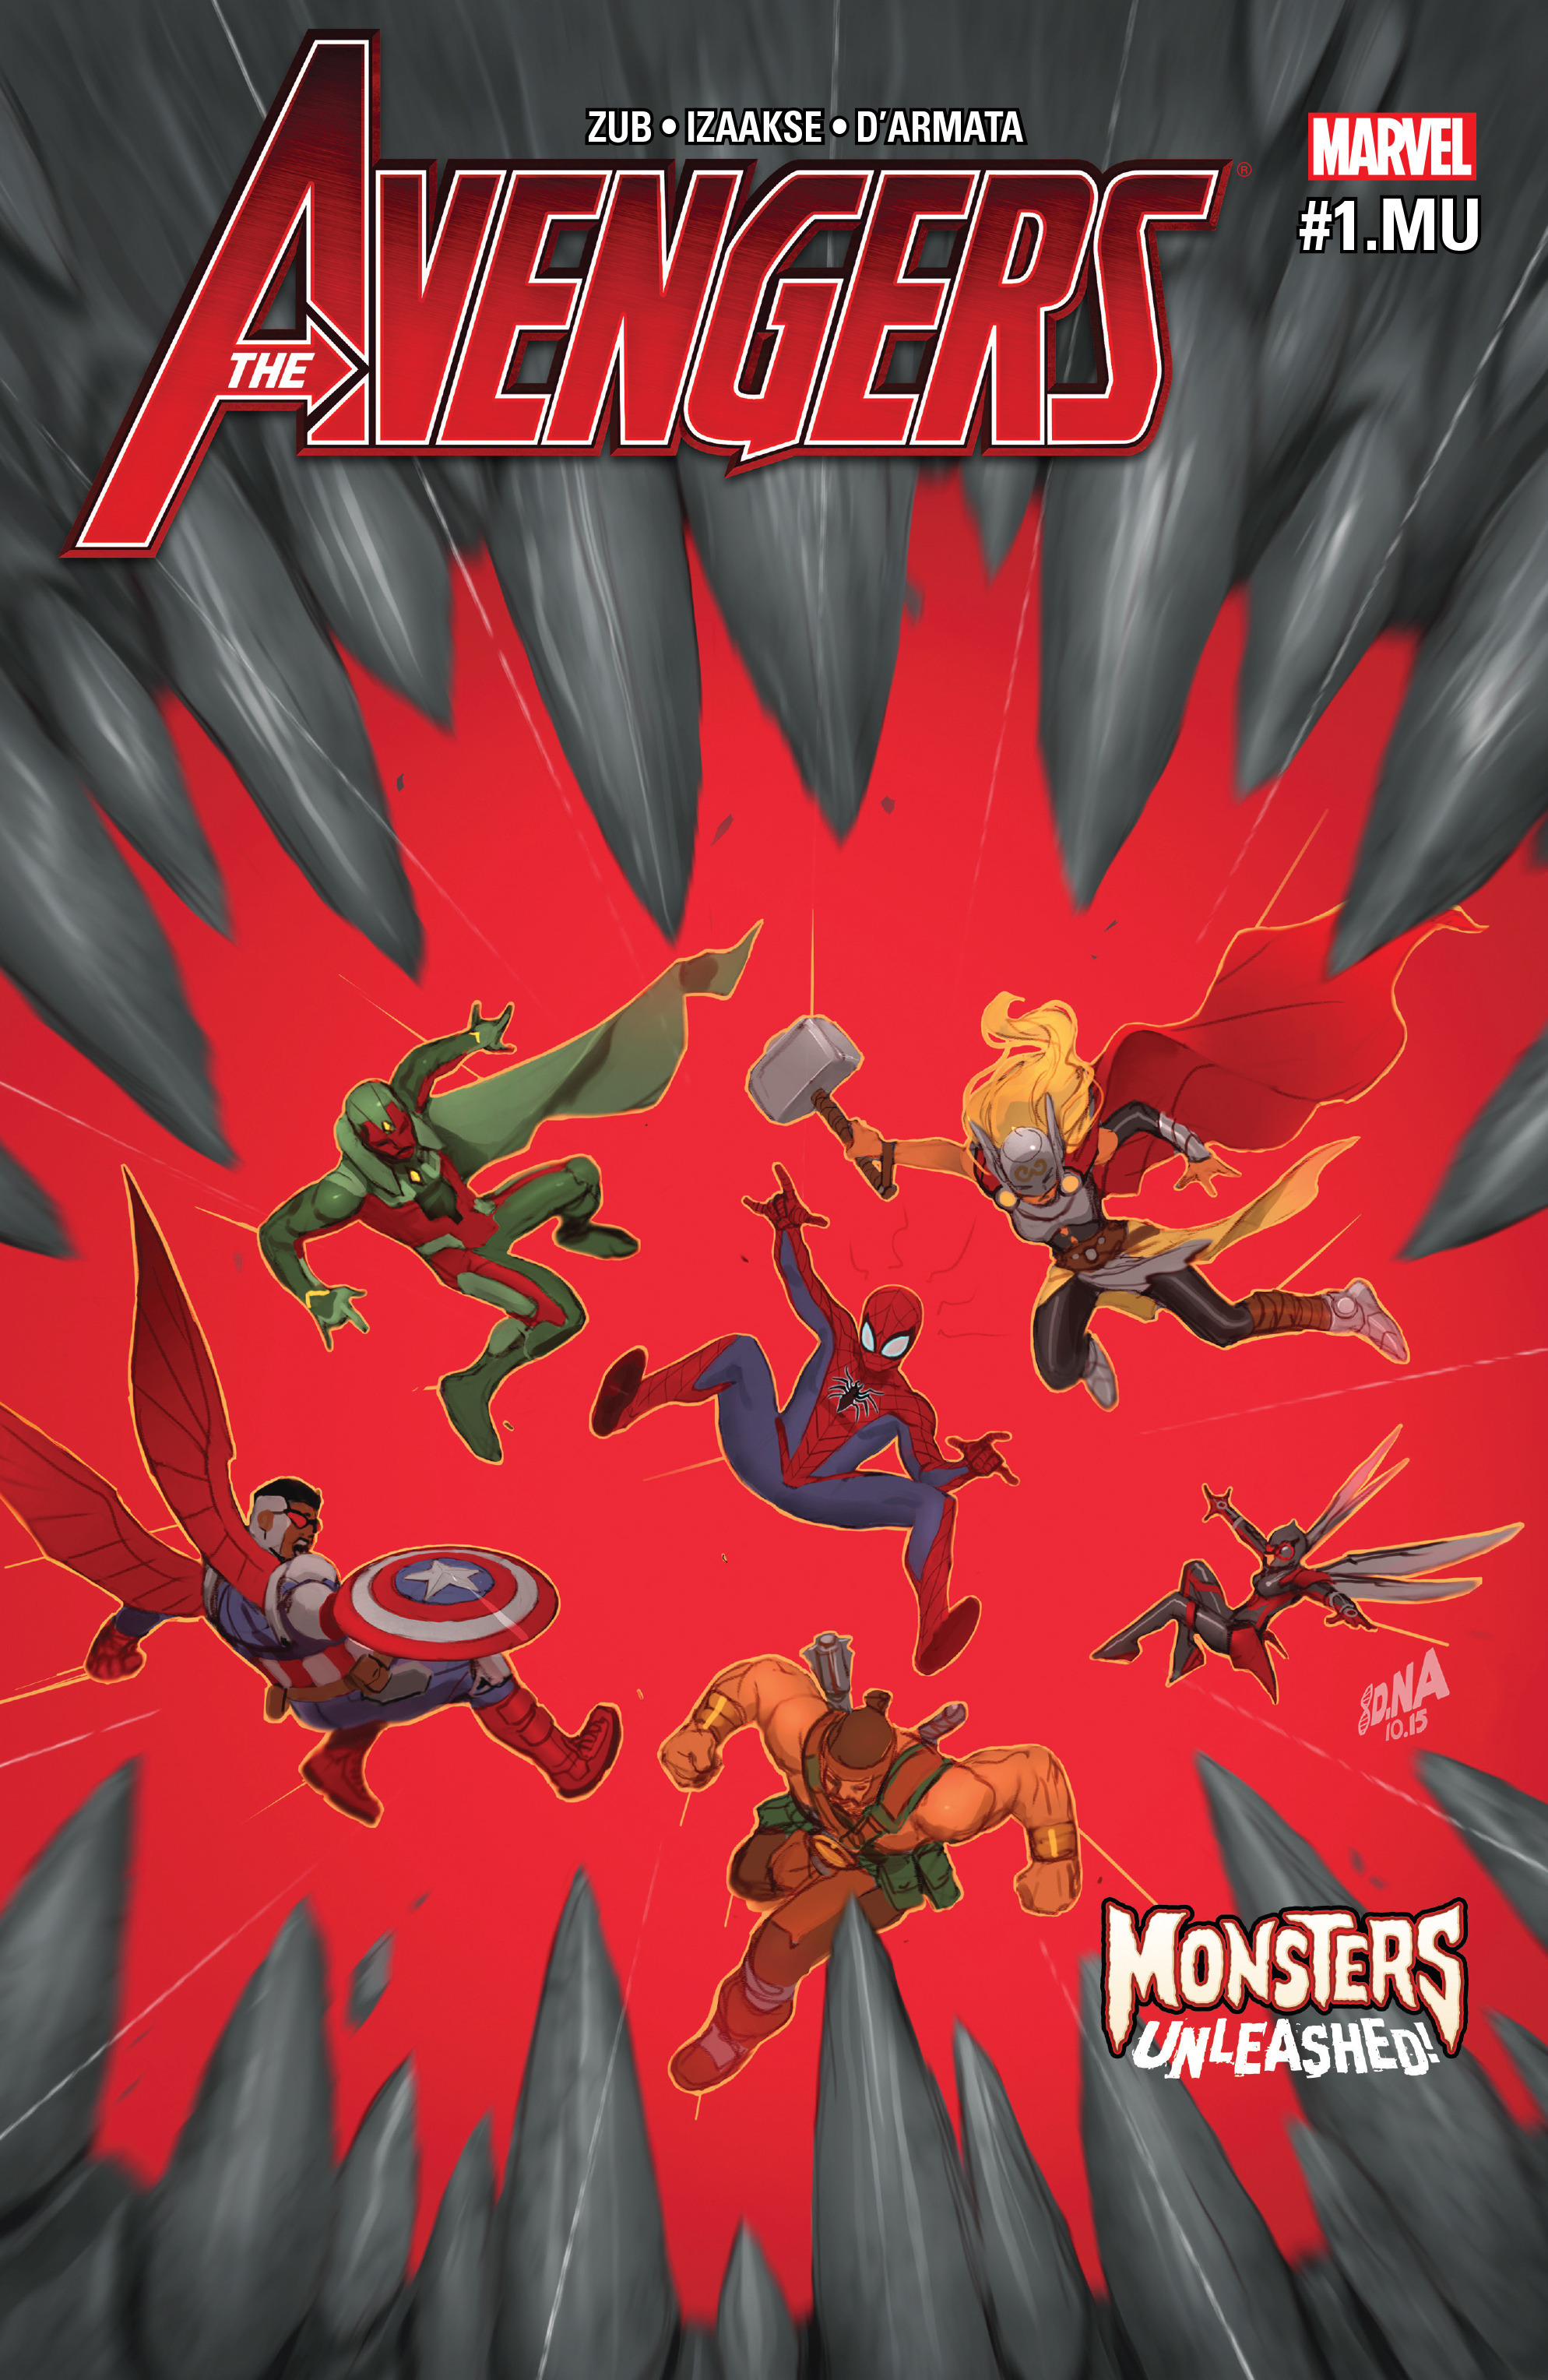 Read online Avengers (2016) comic -  Issue #1.MU - 1